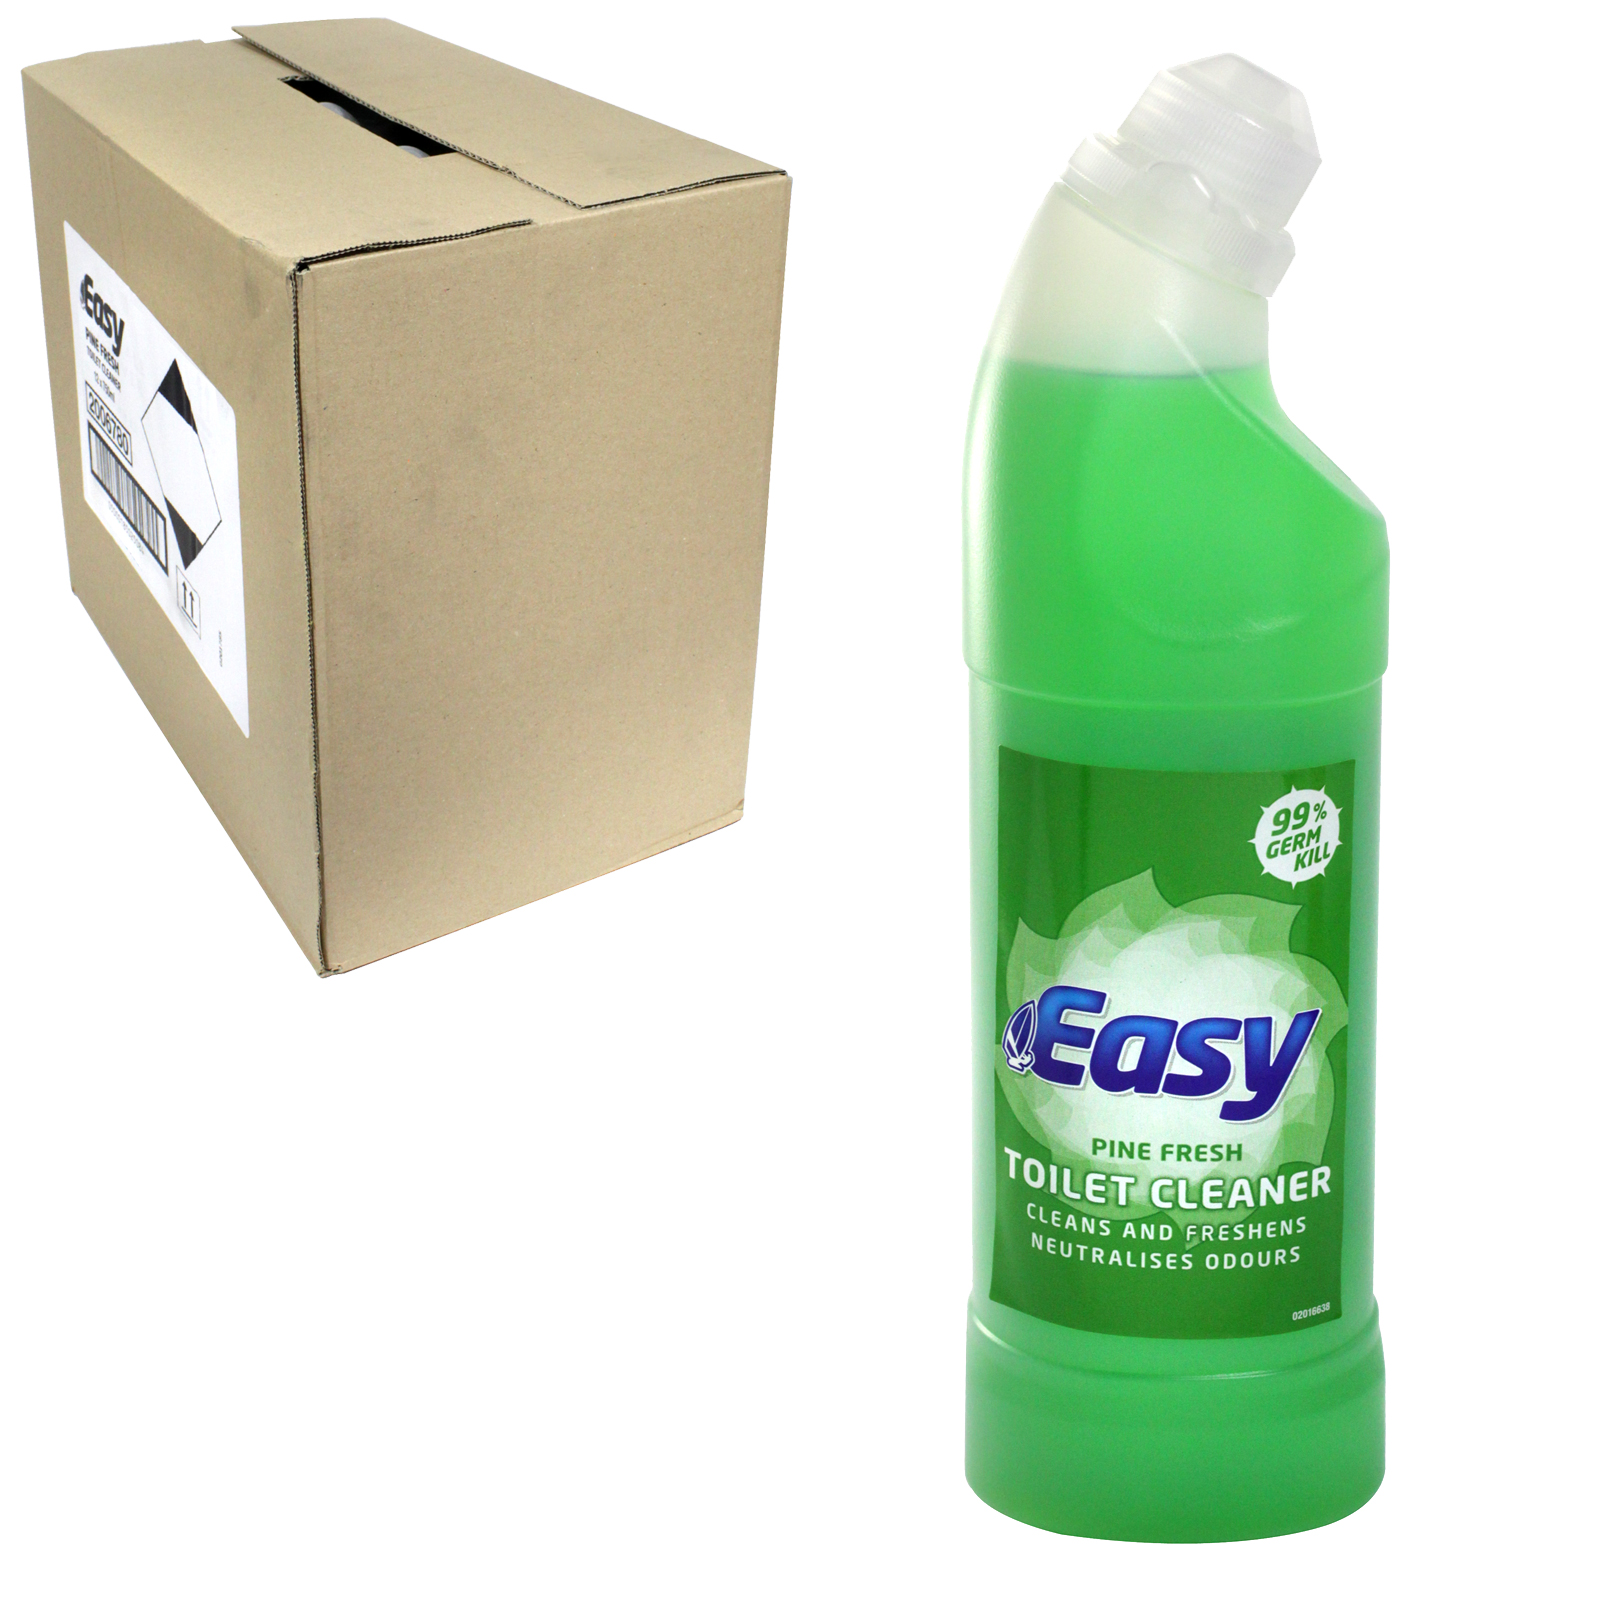 EASY TOILET CLEANER 750ML PINE X12